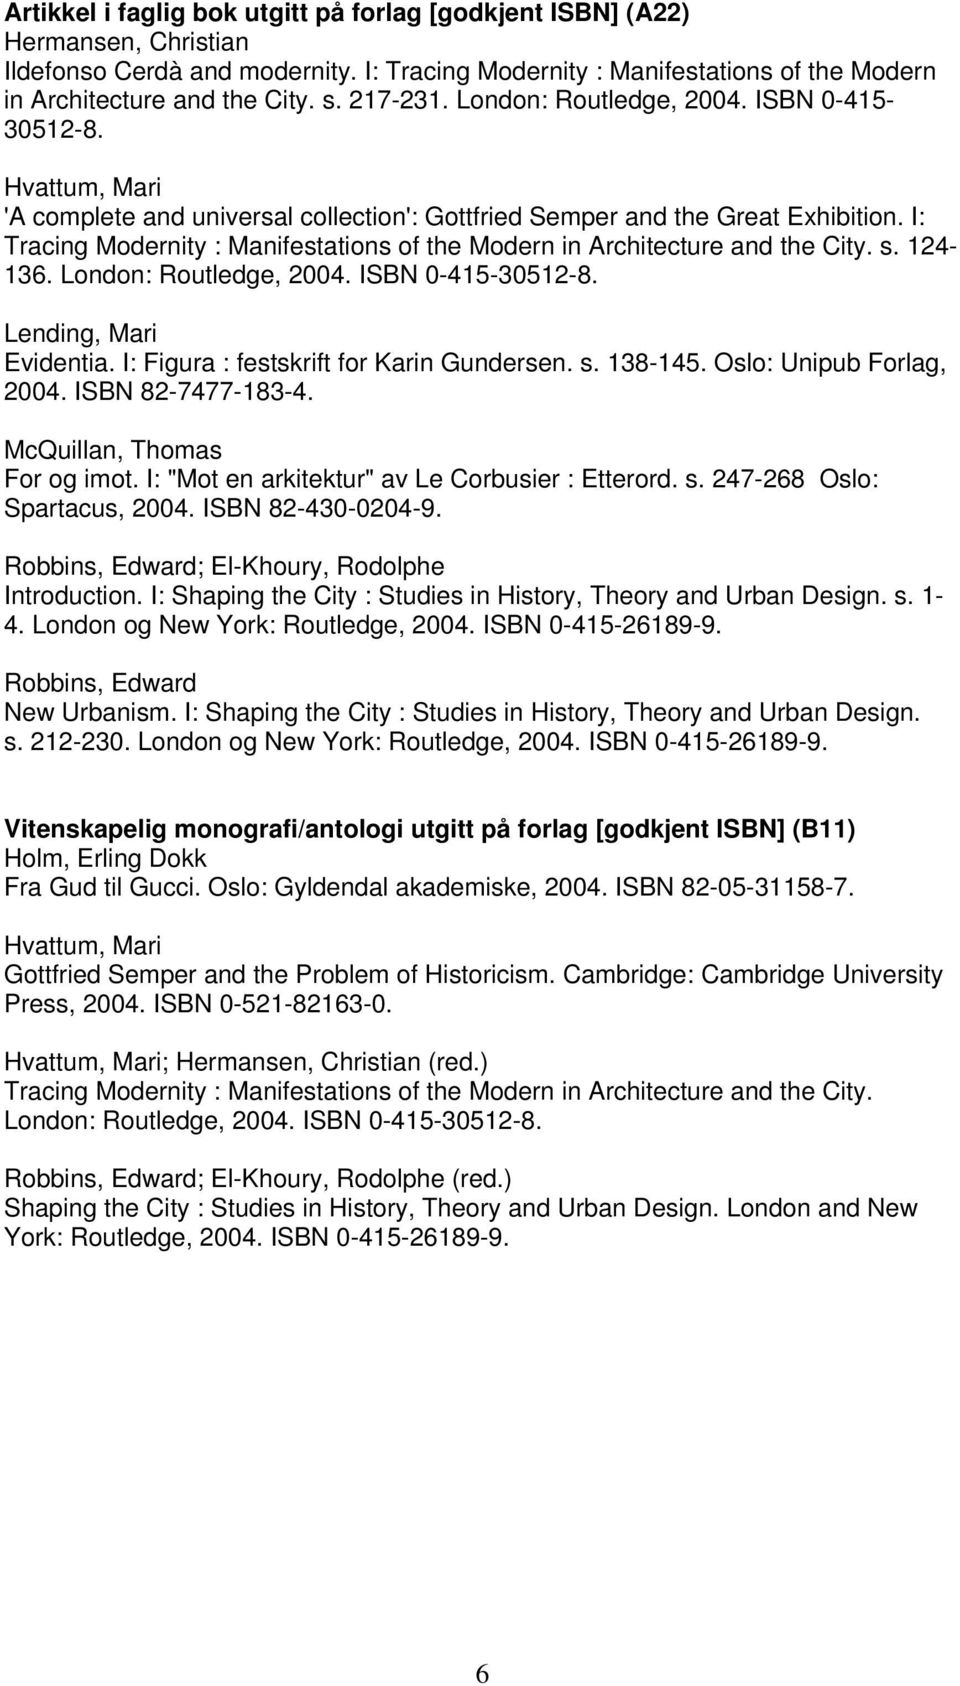 I: Tracing Modernity : Manifestations of the Modern in Architecture and the City. s. 124-136. London: Routledge, 2004. ISBN 0-415-30512-8. Lending, Mari Evidentia.